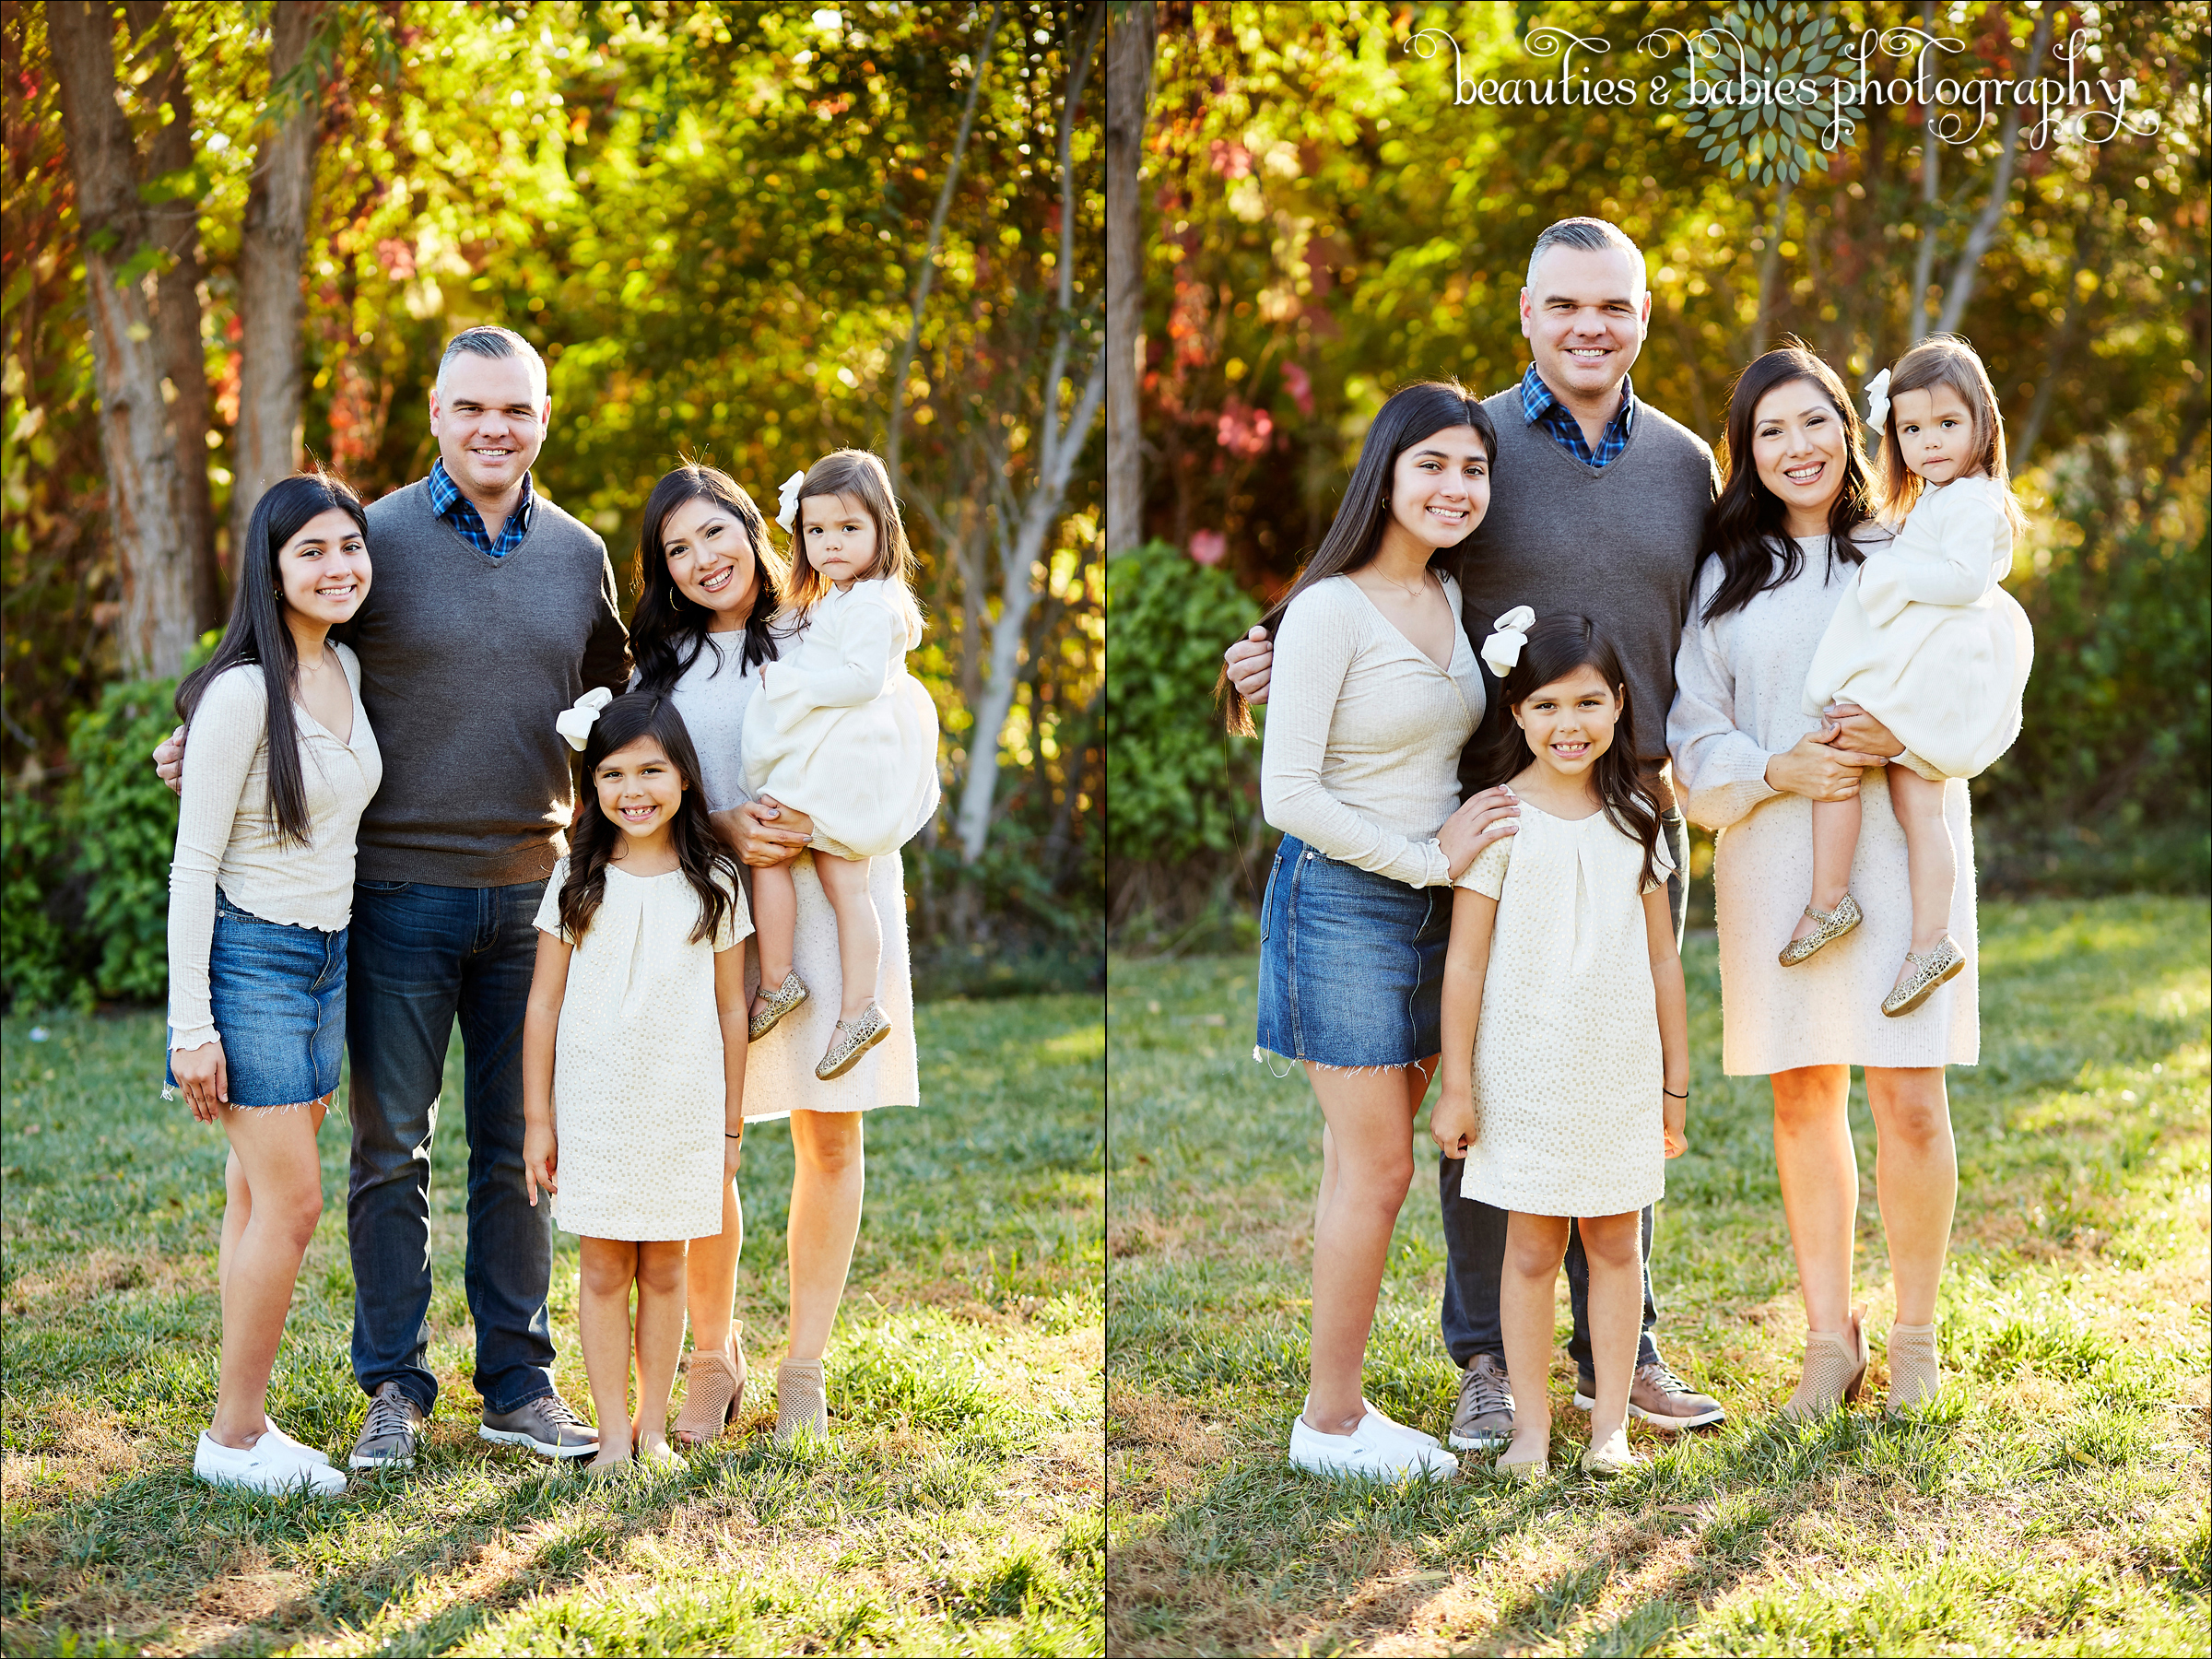 Child and kids photography Los Angeles, Family photography Los Angeles, creative family photographer Los Angeles, best photographer Los Angeles family photography